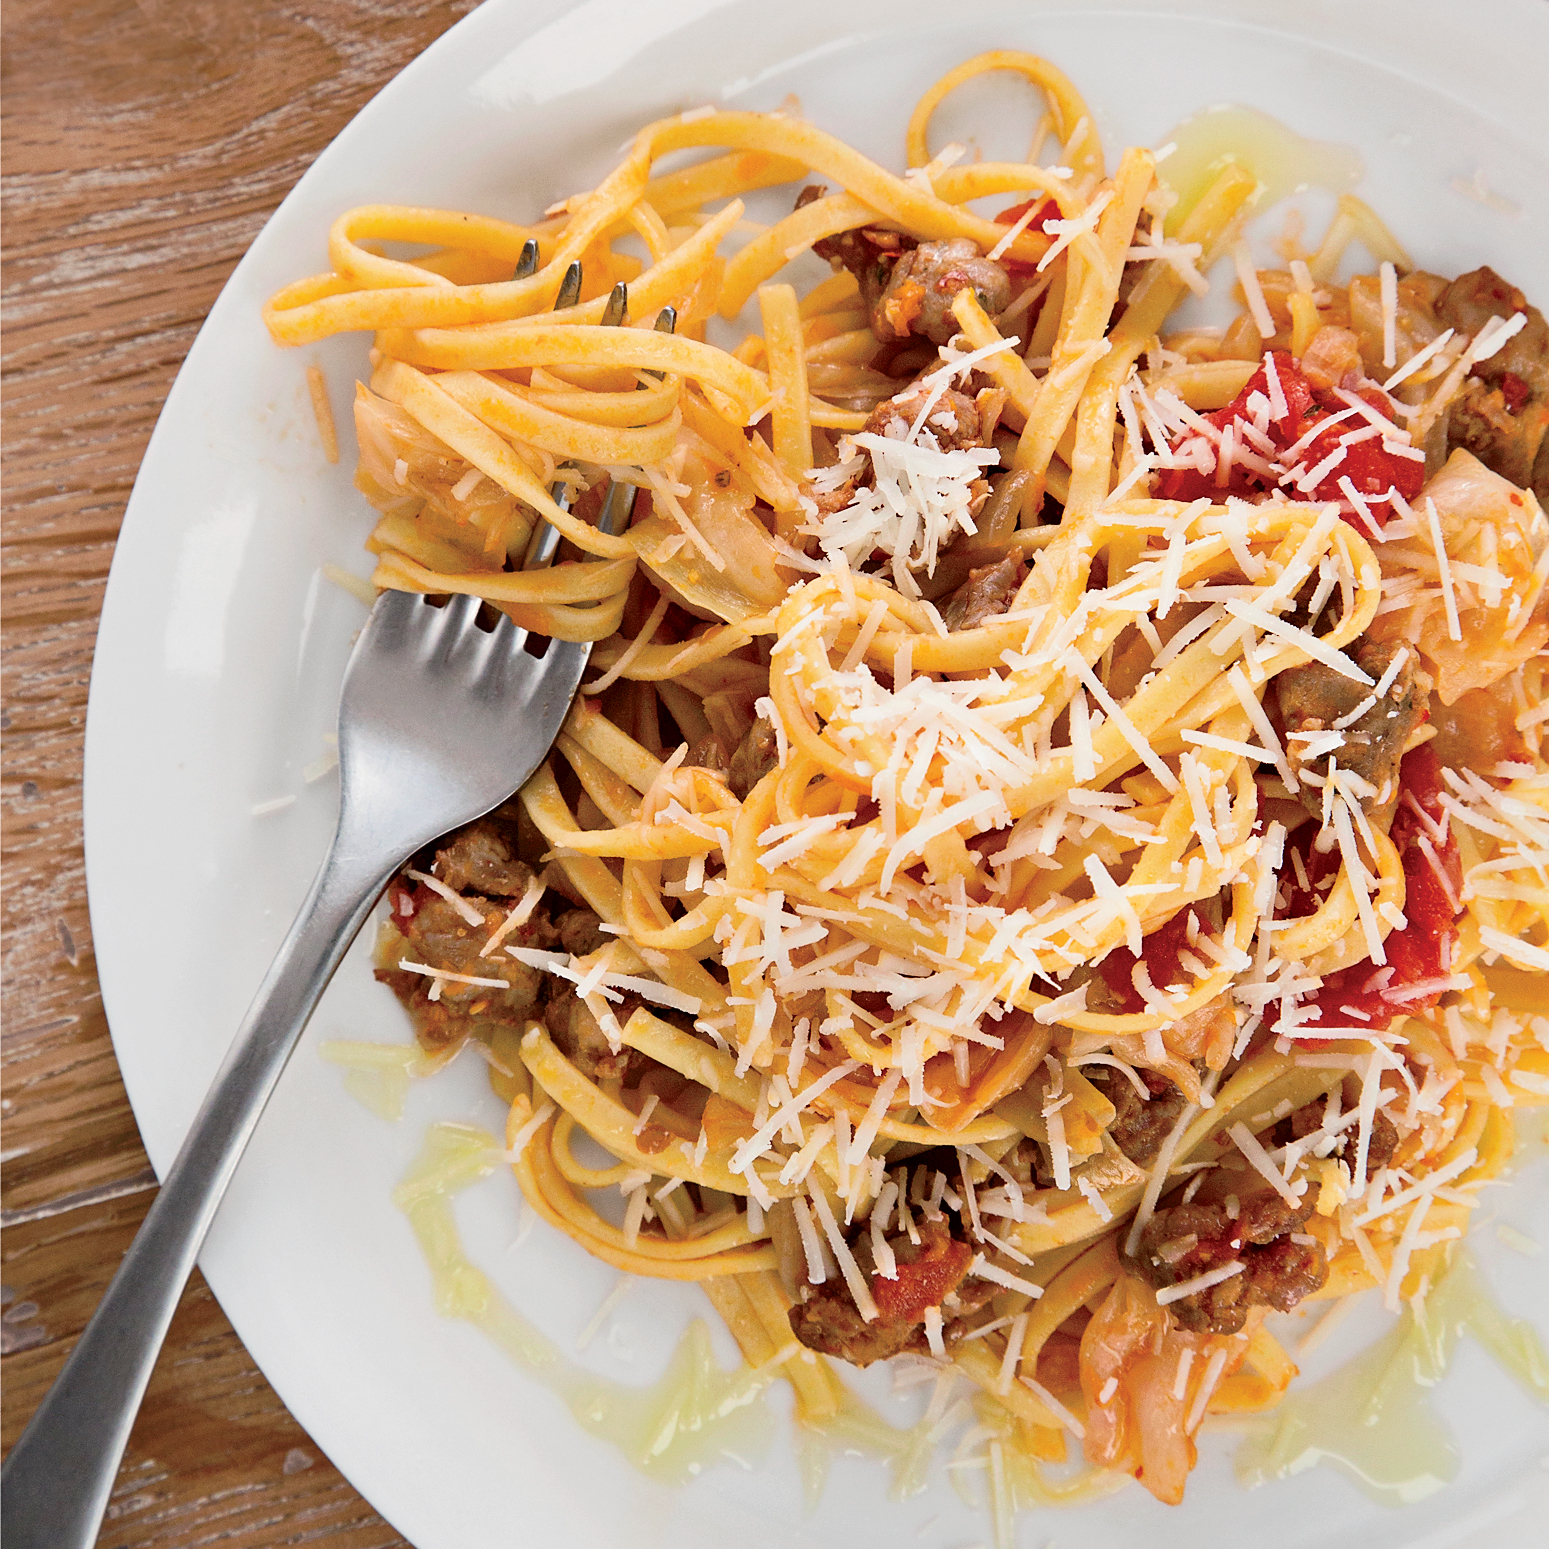 Fettuccine with Spicy Sausage and Cabbage Ribbons